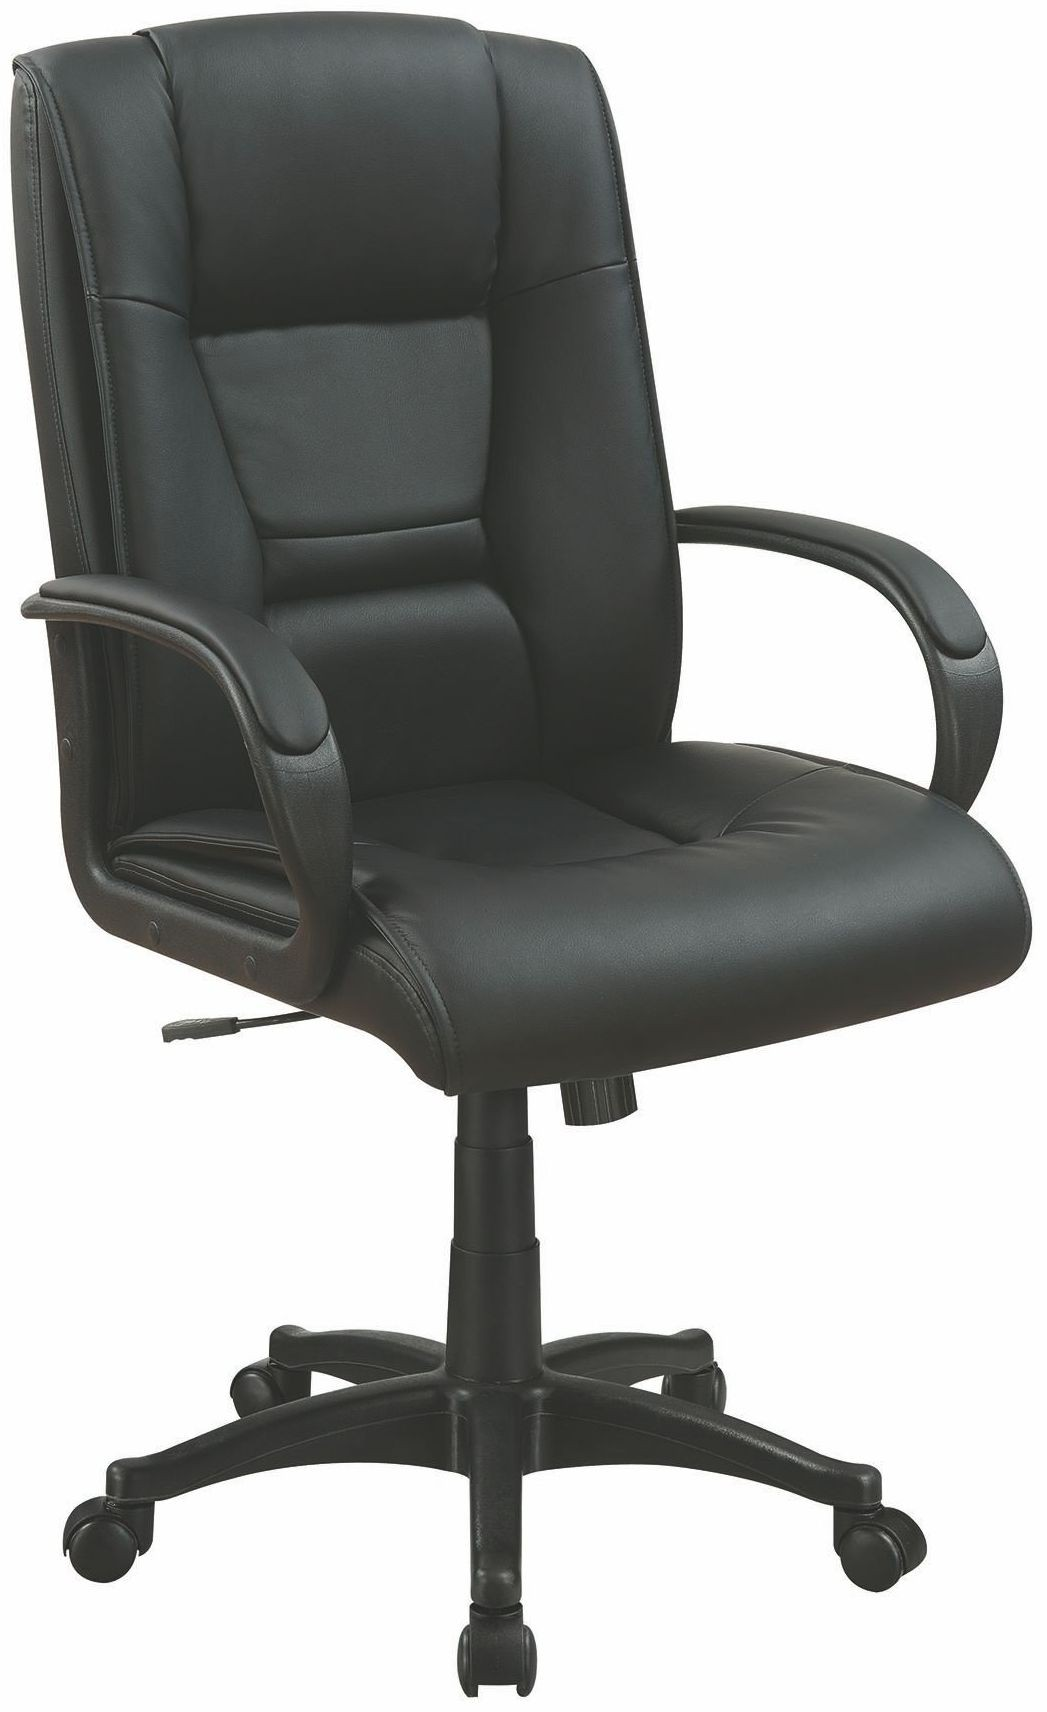 Black Vinyl Office Chair From Coaster Coleman Furniture